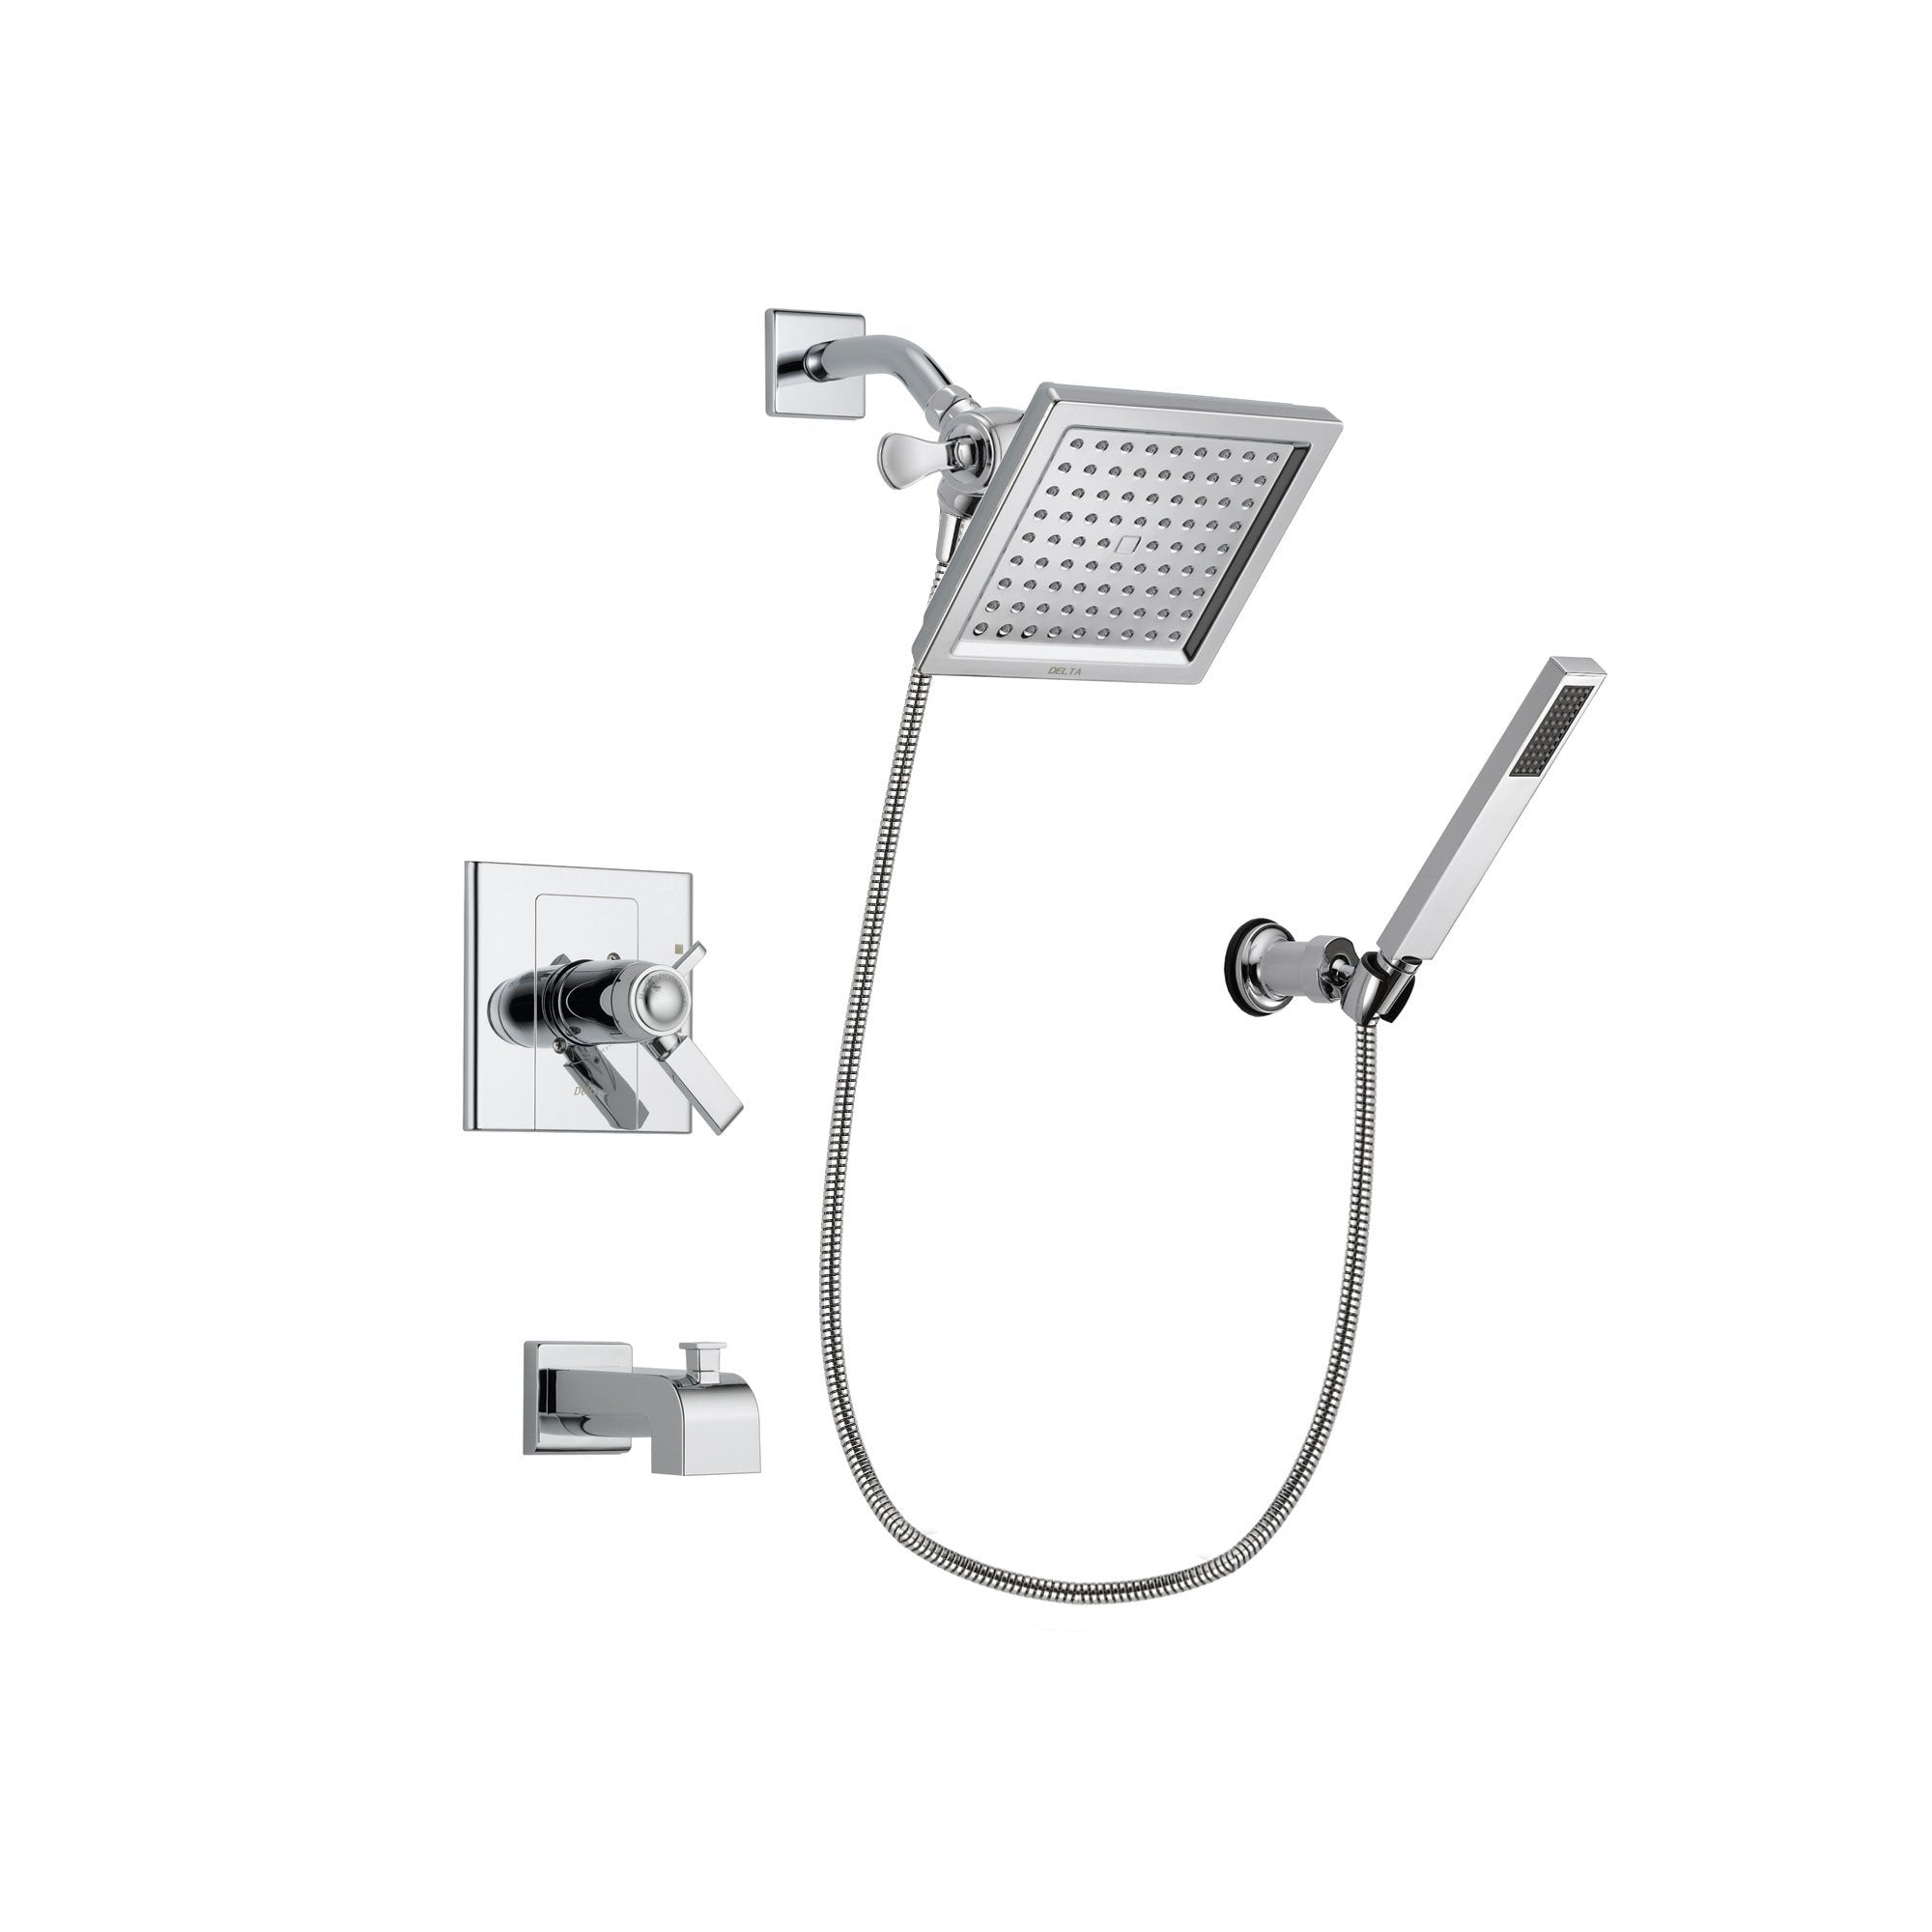 Delta Arzo Chrome Finish Thermostatic Tub and Shower Faucet System Package with 6.5-inch Square Rain Showerhead and Modern Handheld Shower Spray with Wall Bracket and Hose Includes Rough-in Valve and Tub Spout DSP0118V